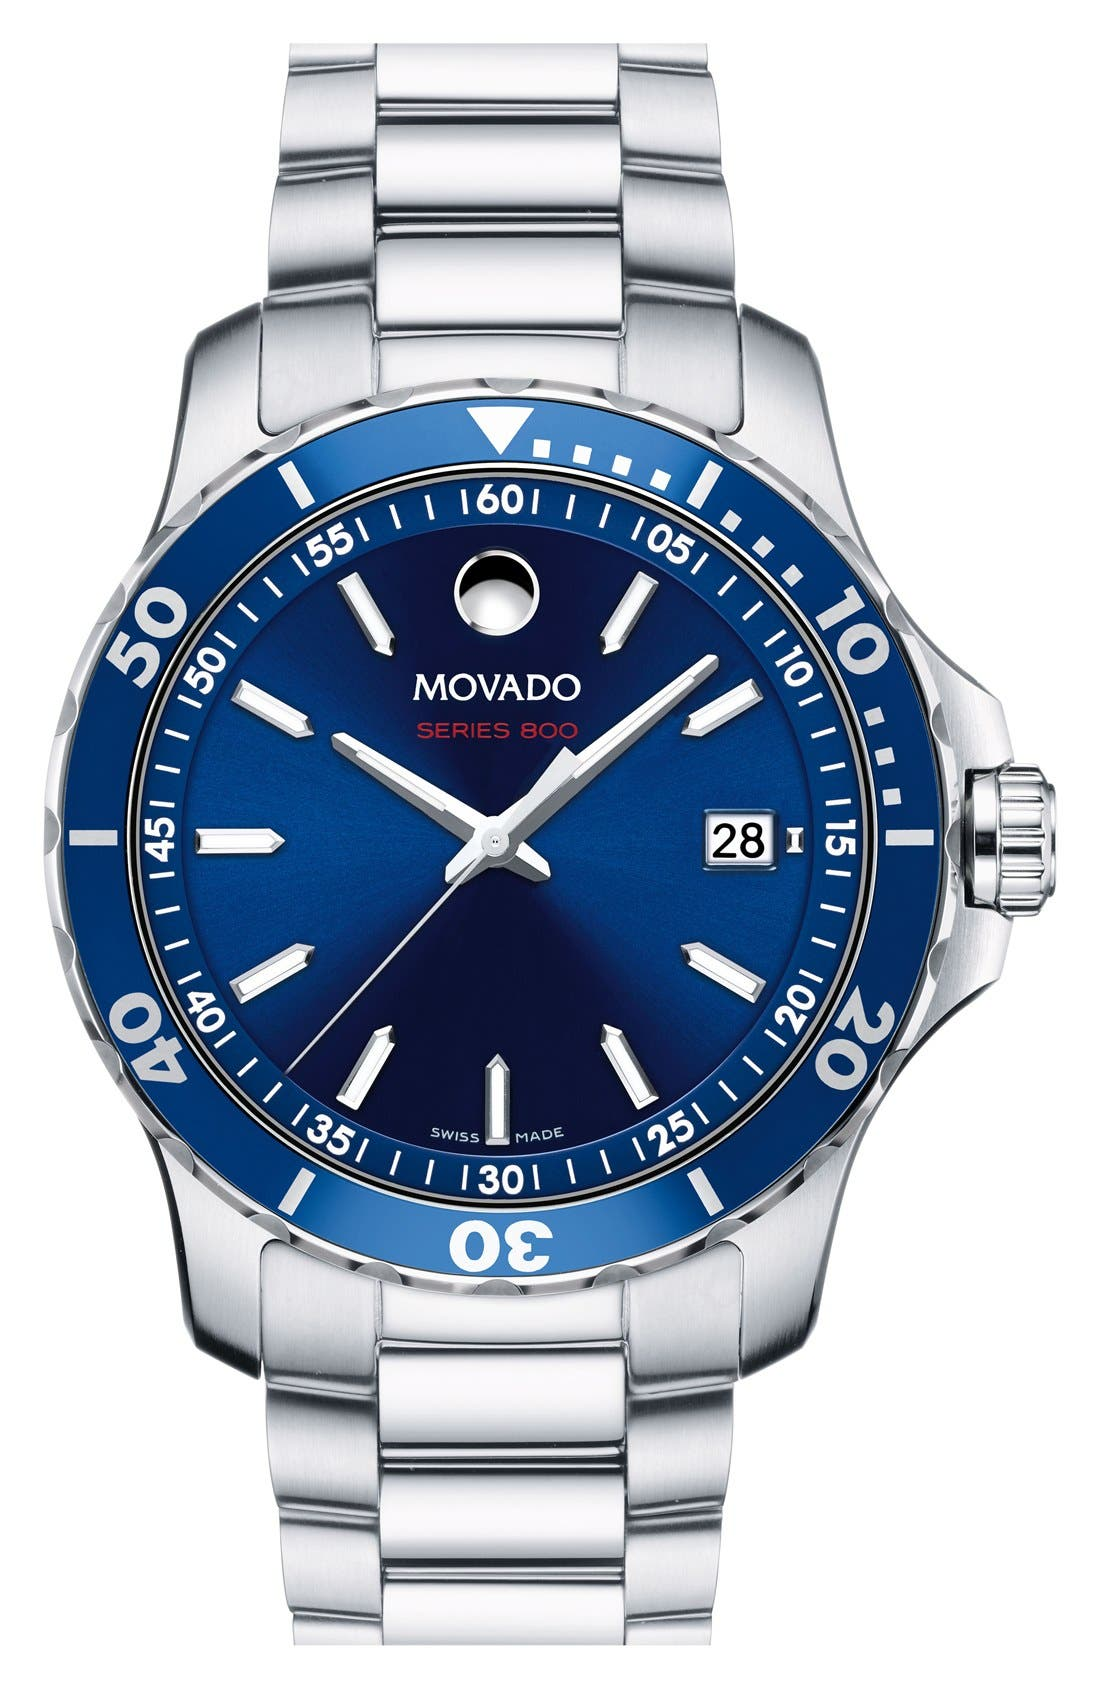 Alternate Image 1 Selected - Movado 'Series 800' Bracelet Watch, 40mm